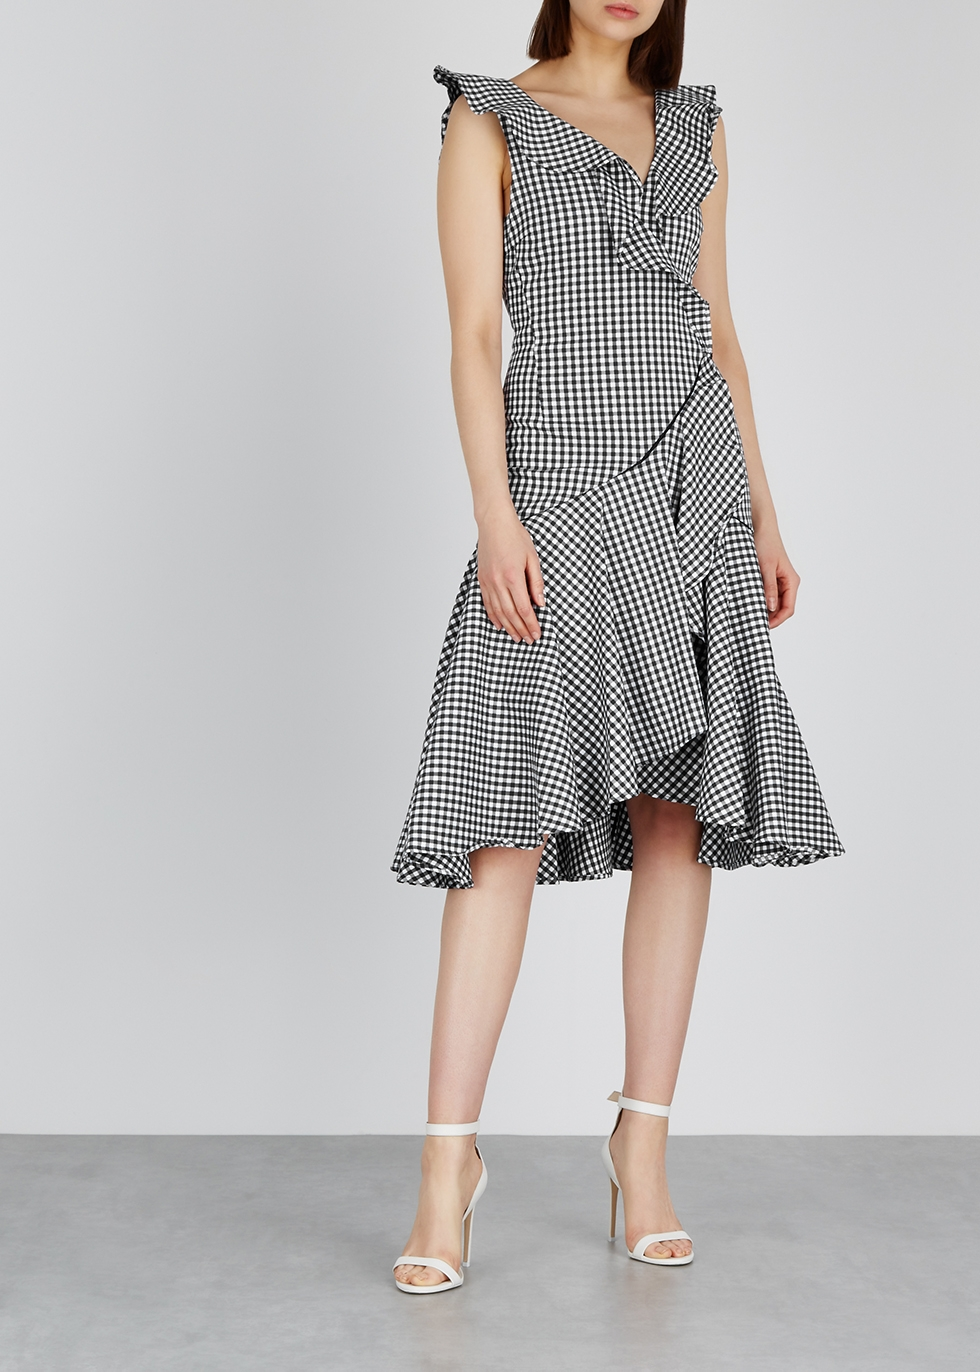 Gingham cotton-blend dress - Jonathan Simkhai